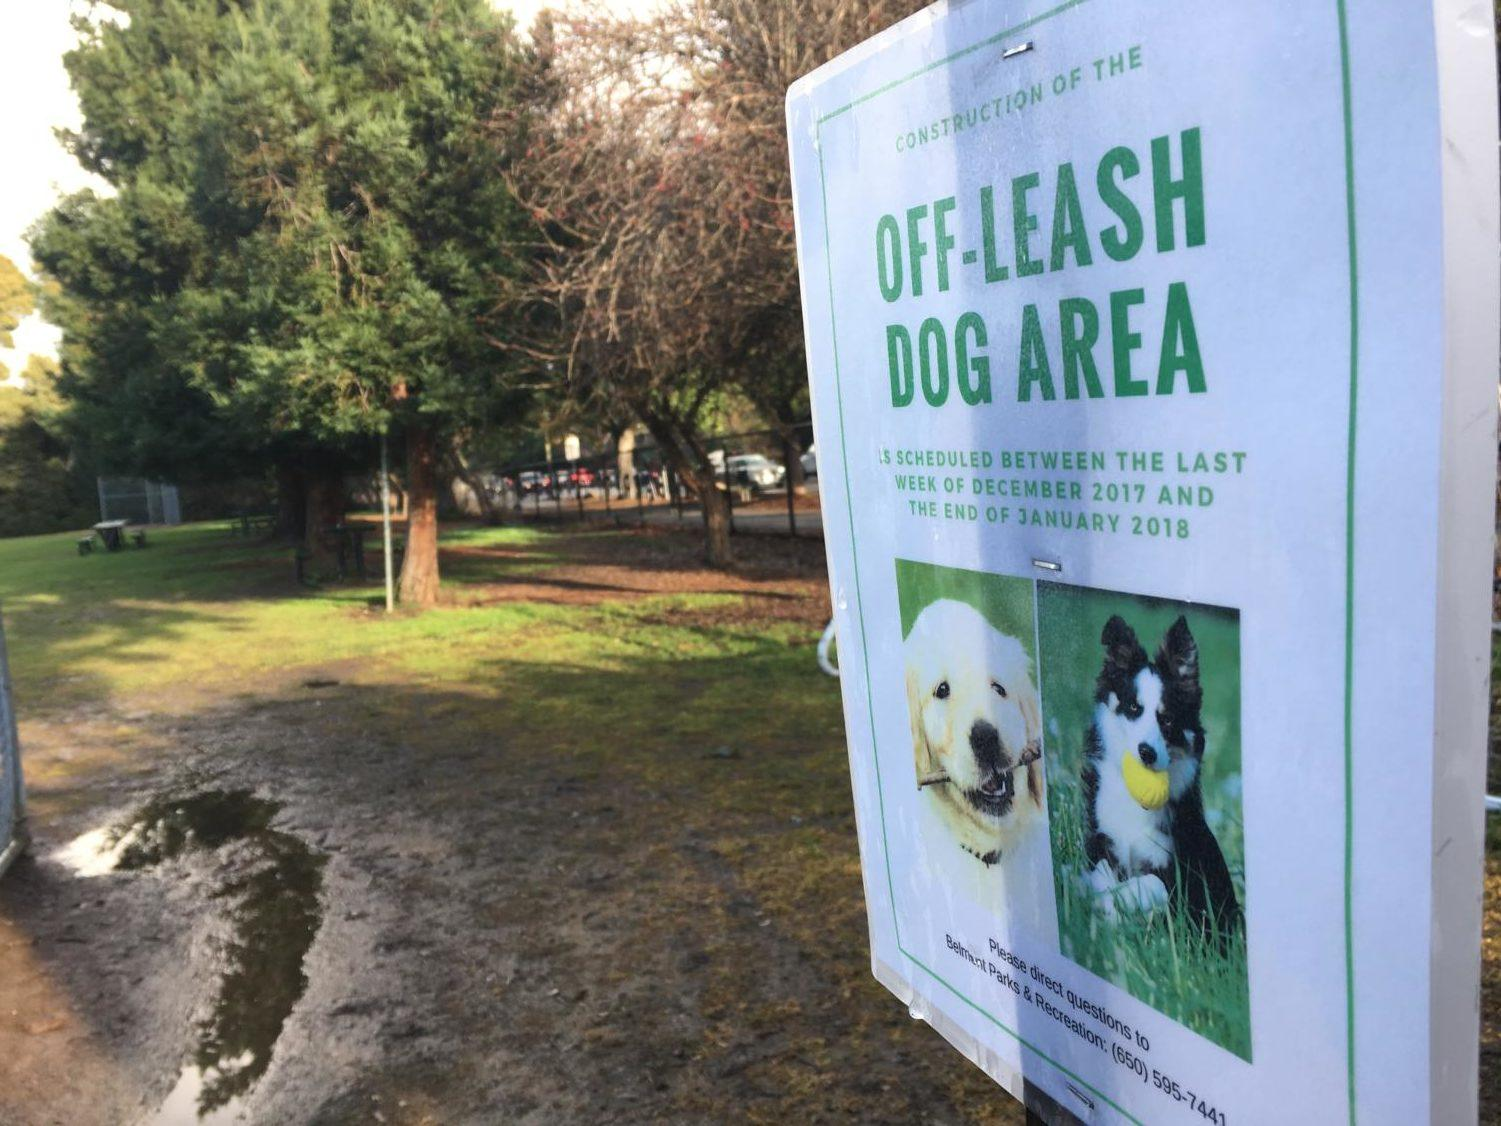 This sign notifies the arrival of an off-leash dog area at Barrett Park. This is one of many changes Barrett Park is going through as a result of the compromise in the Belmont community.